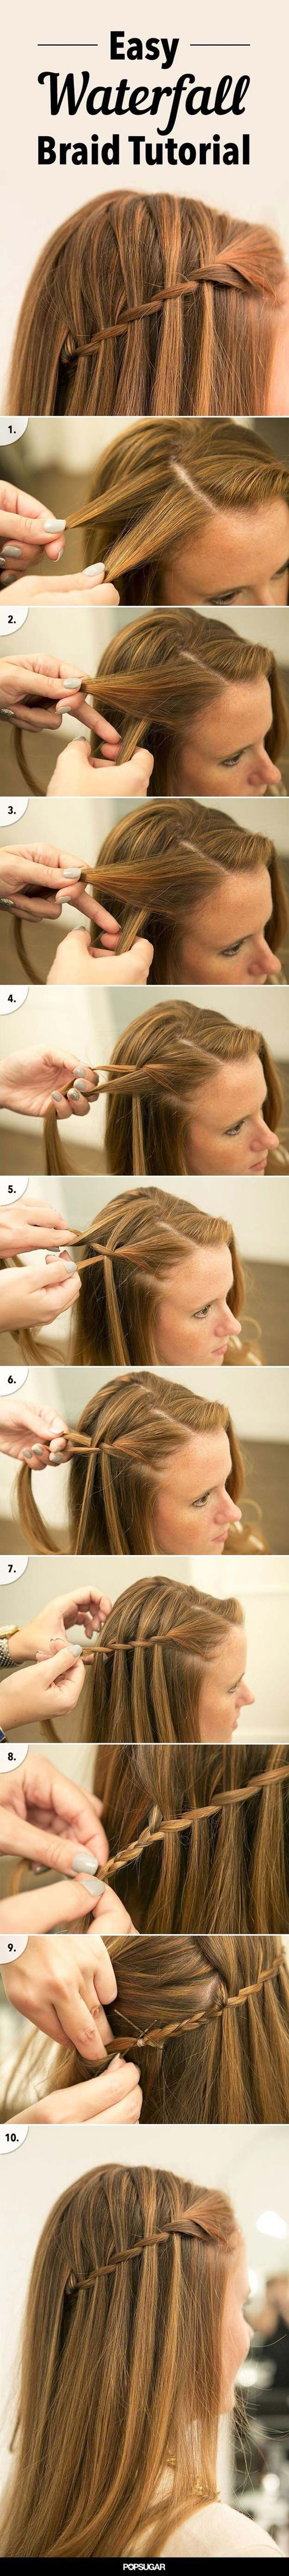 67 best easy hairstyles images on Pinterest